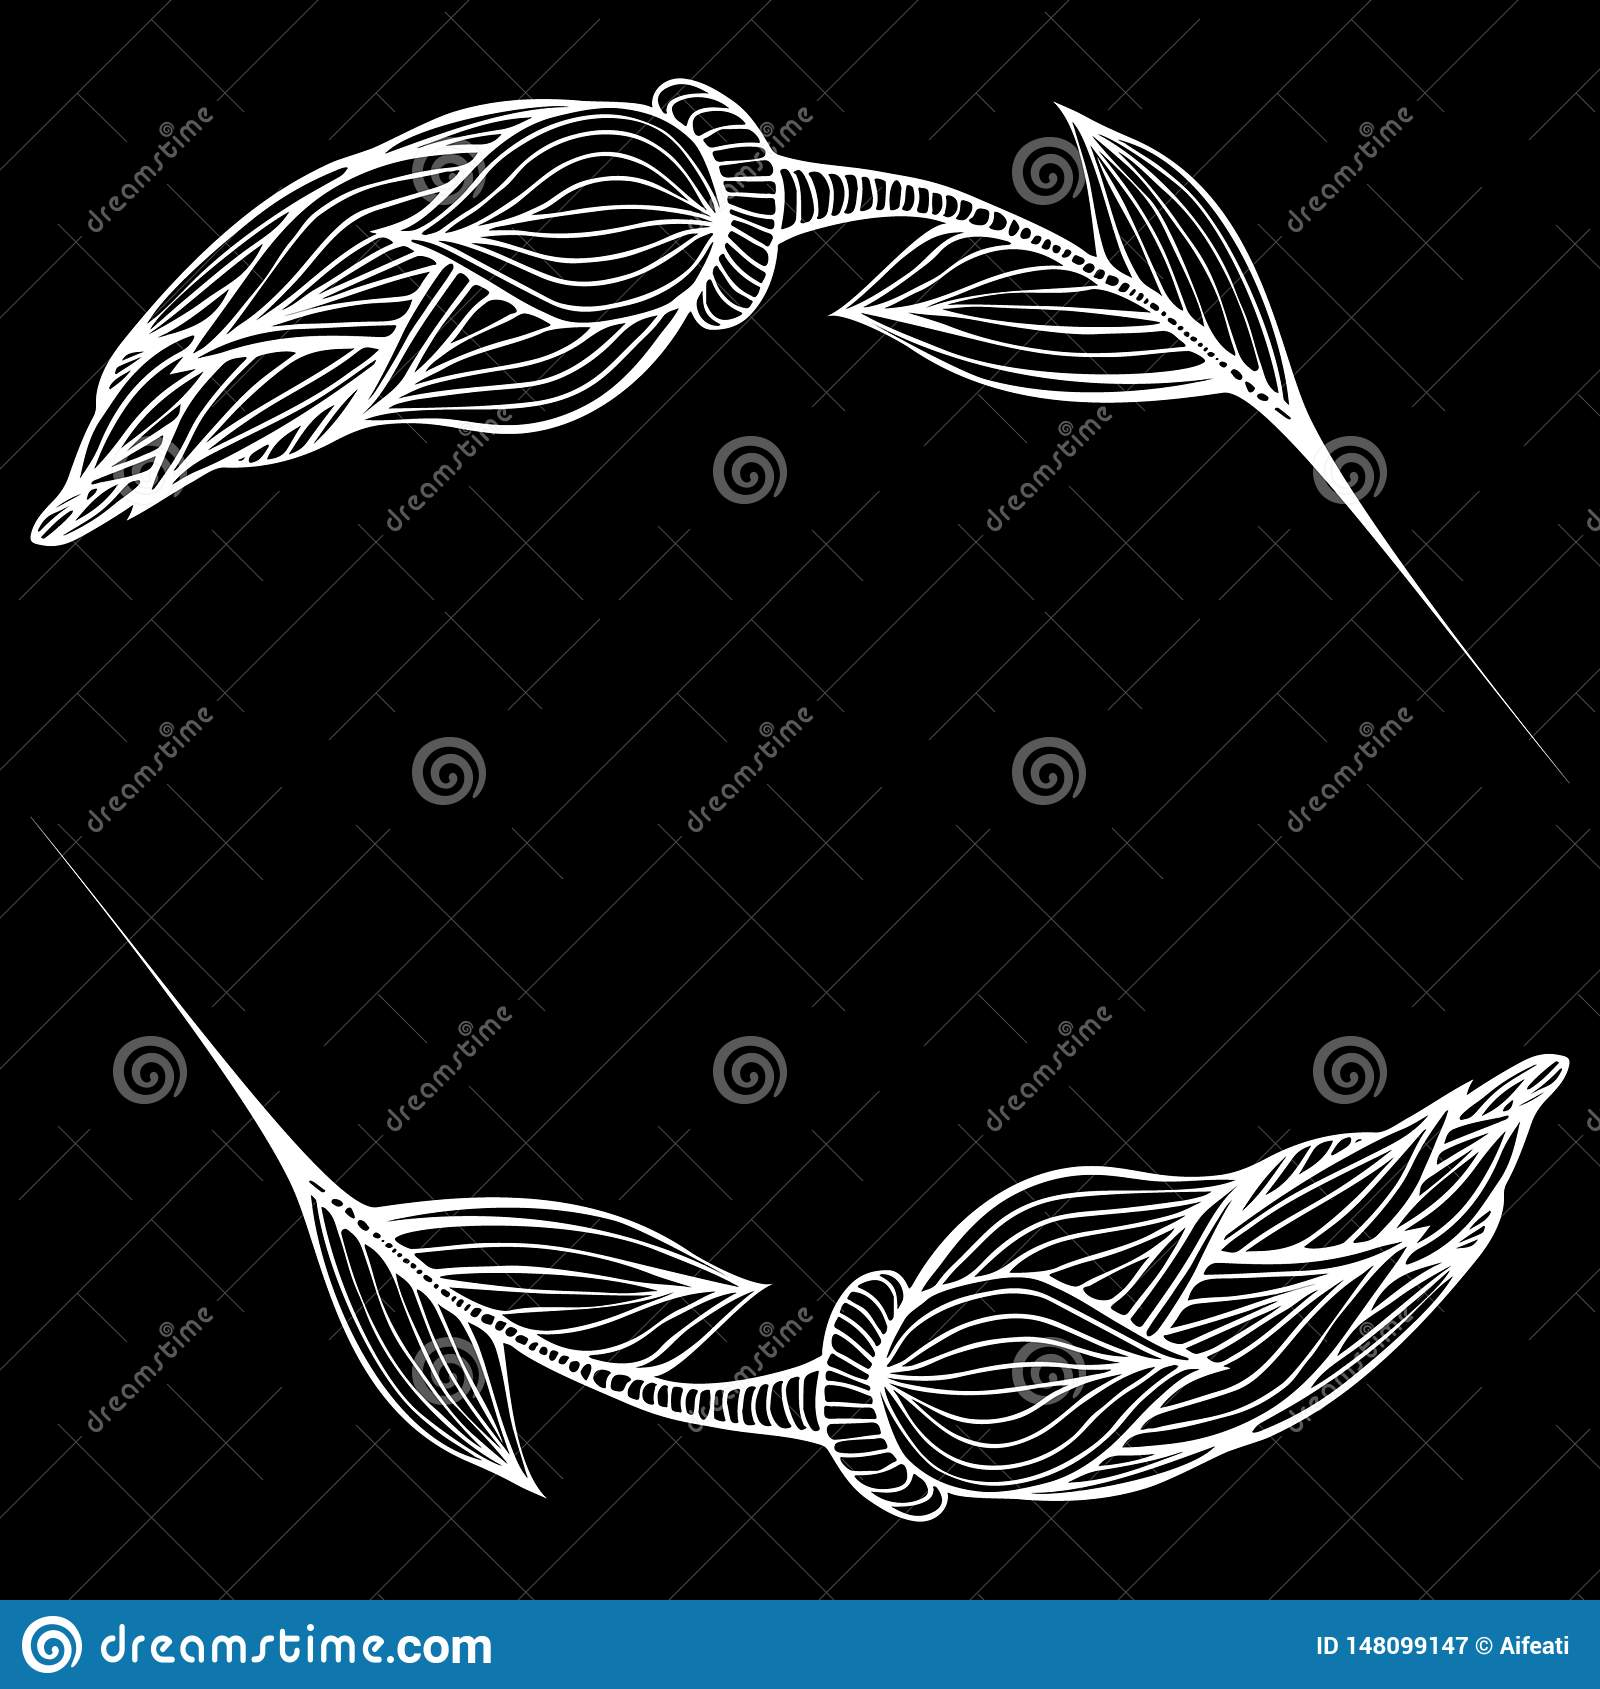 Abstract hand drawn of two rose flowers isolated on black background. Vector illustration. Line art. Sketch